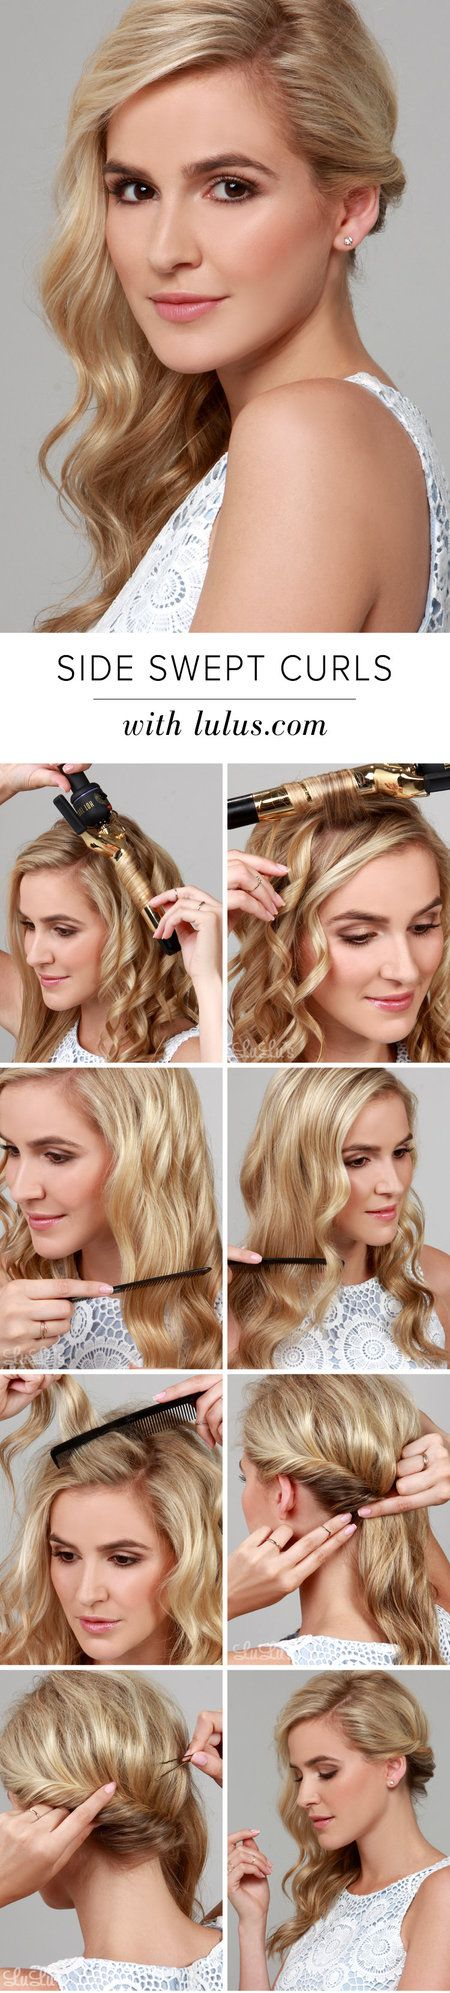 Easy way to style your hair curls:)  http://blog.lulus.com/category/beauty/